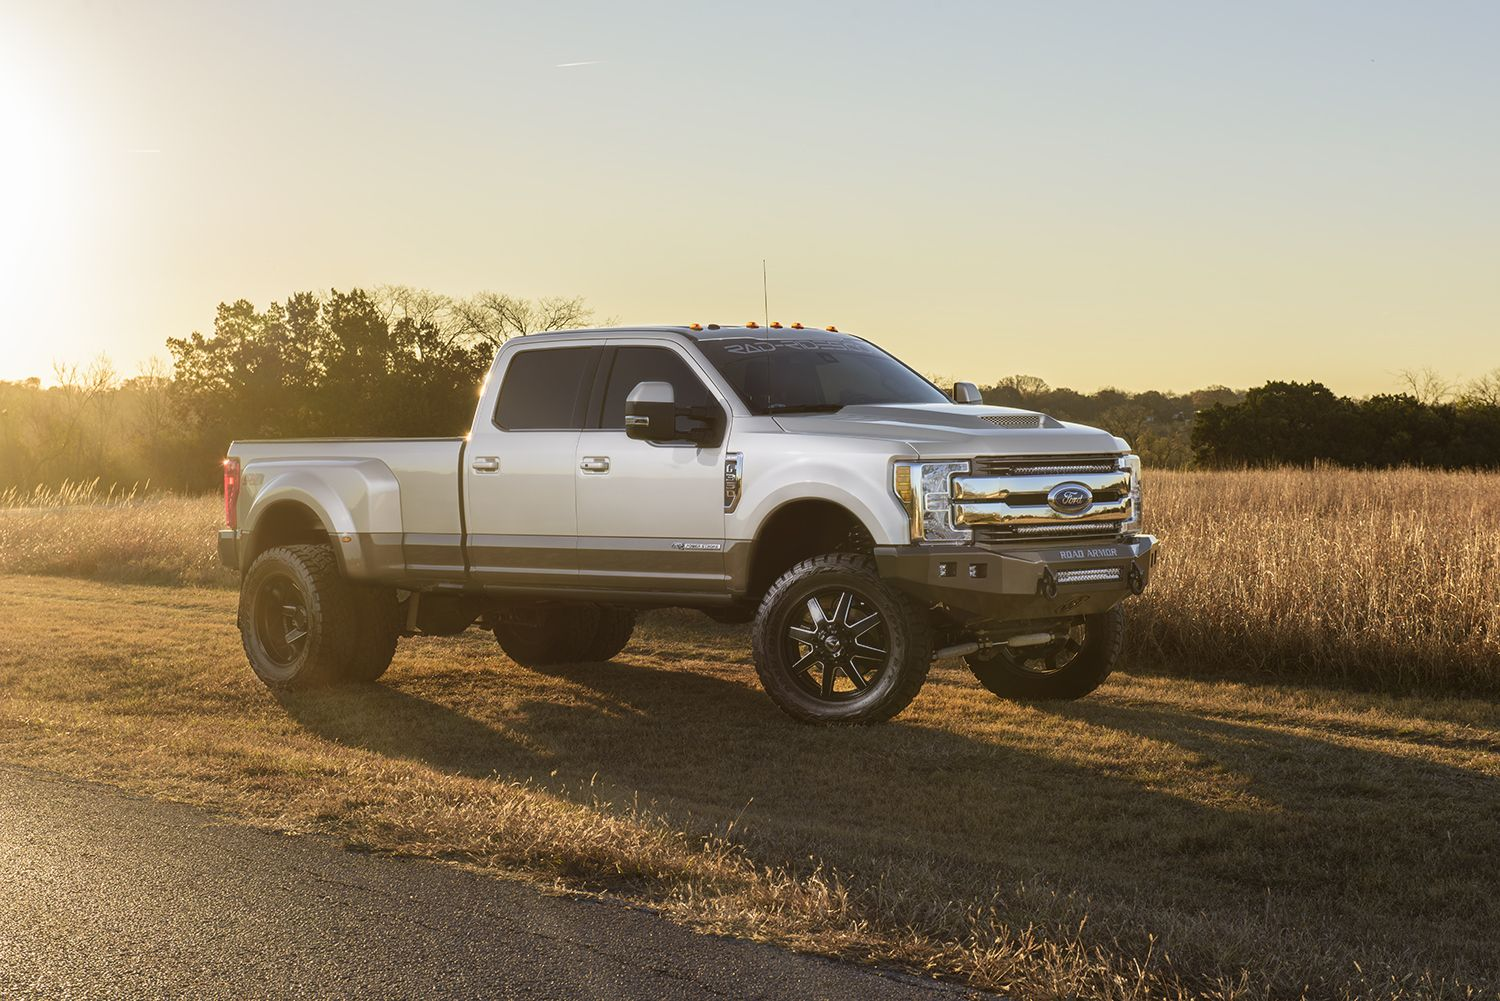 2017 Ford F 350 Dually Lifted 4x4 Truck King Ranch With Fuel 22 Maverick Wheels Pro Comp 6 Lift Toyo R T Open Country Tires Road Ar Trucks King Ranch Ford